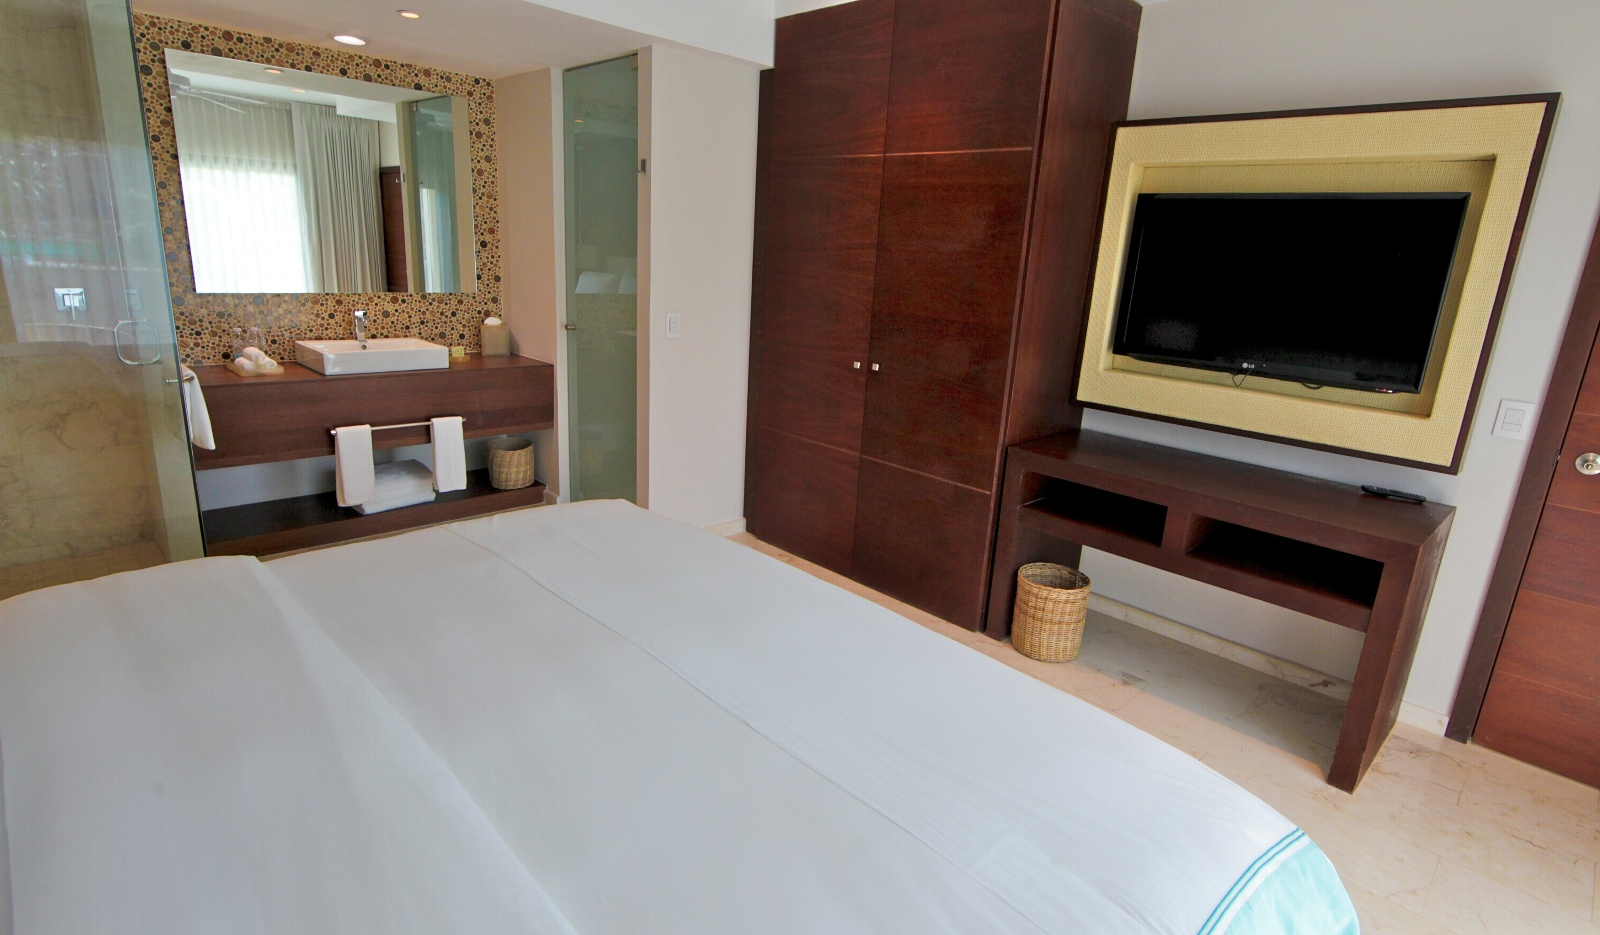 alm_Room